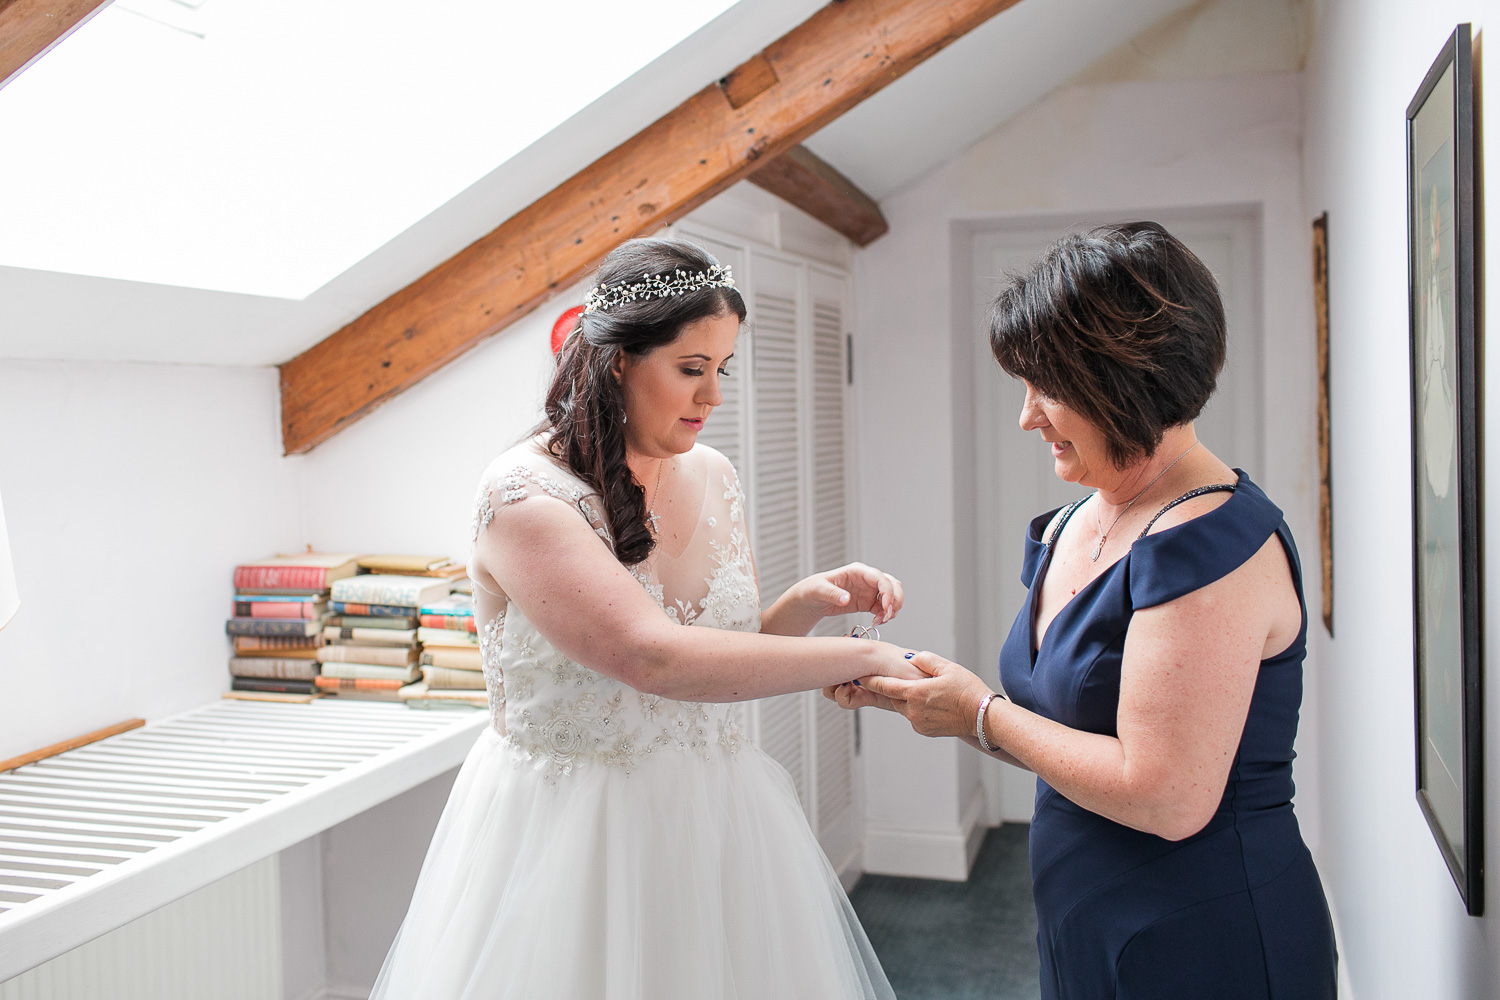 Mom putting on a bracelet on her daughter before her wedding ceremony